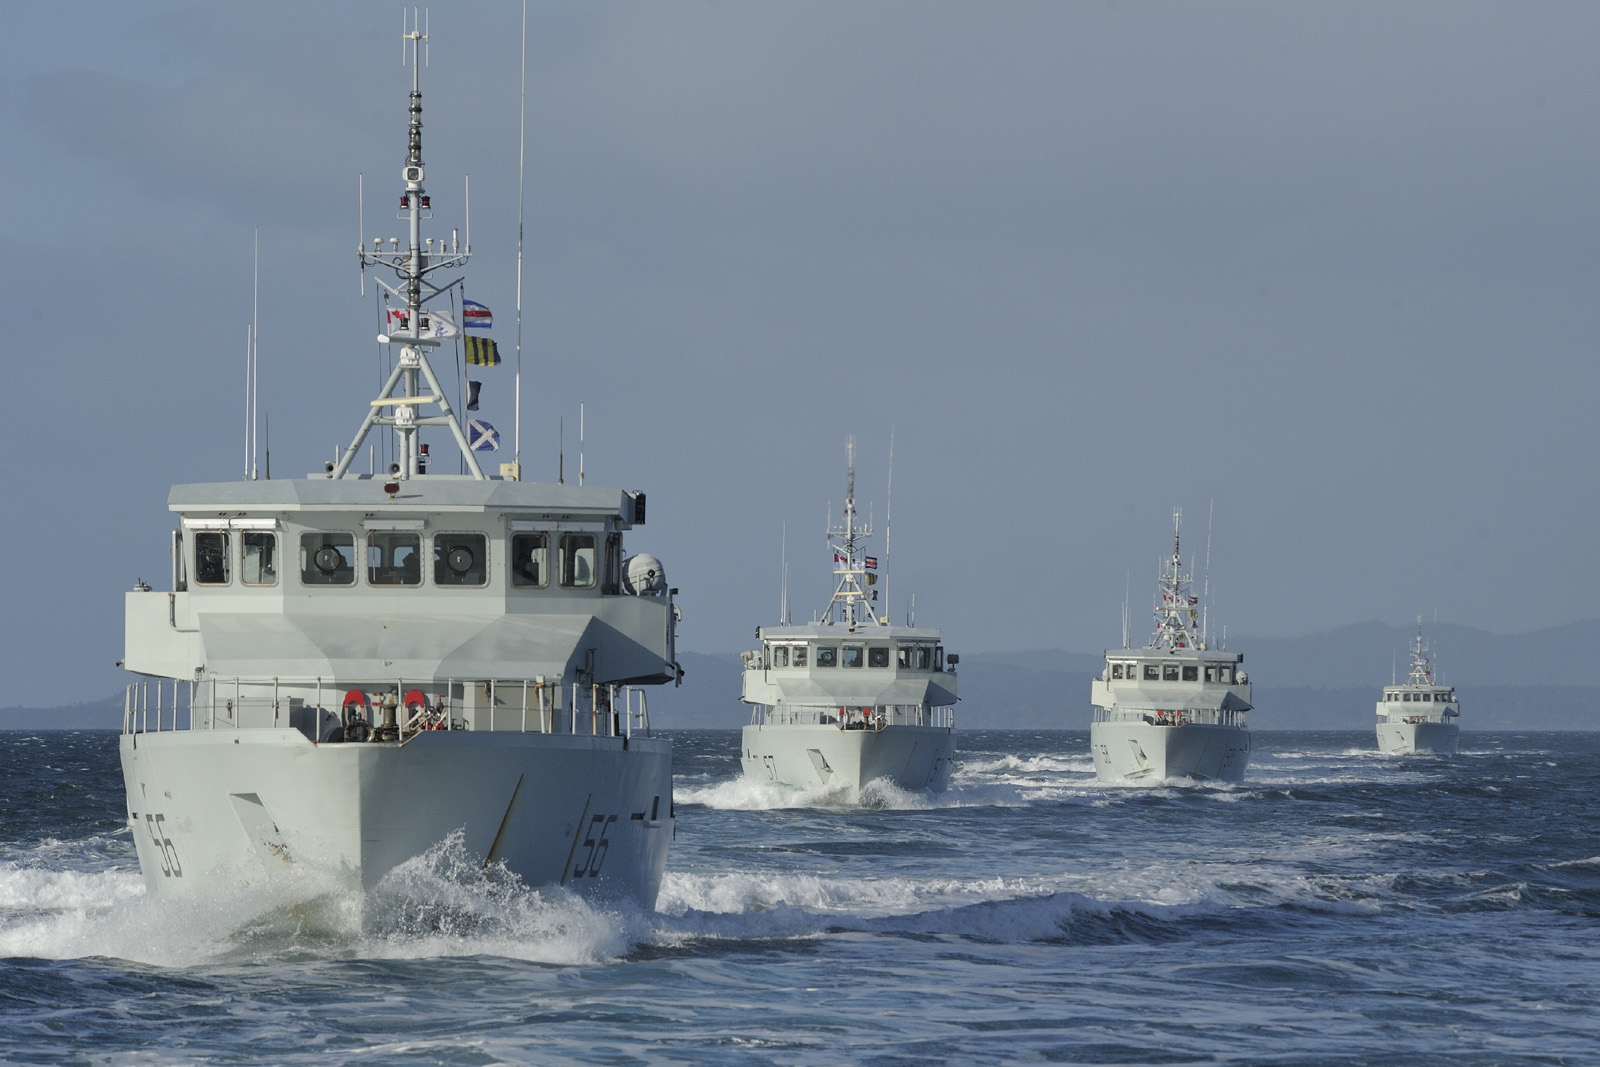 Patrol craft (training) boats Raven (hull number 56), Caribou (hull number 57), Renard (hull number 58) and Grizzly (hull number 60) sailing in formation during PCTS PHOTOEX, a joint exercise between 7 of the 8 West Coast PCT's in the staits of Juan de Fuca near Victoria BC on February 14th 2014.